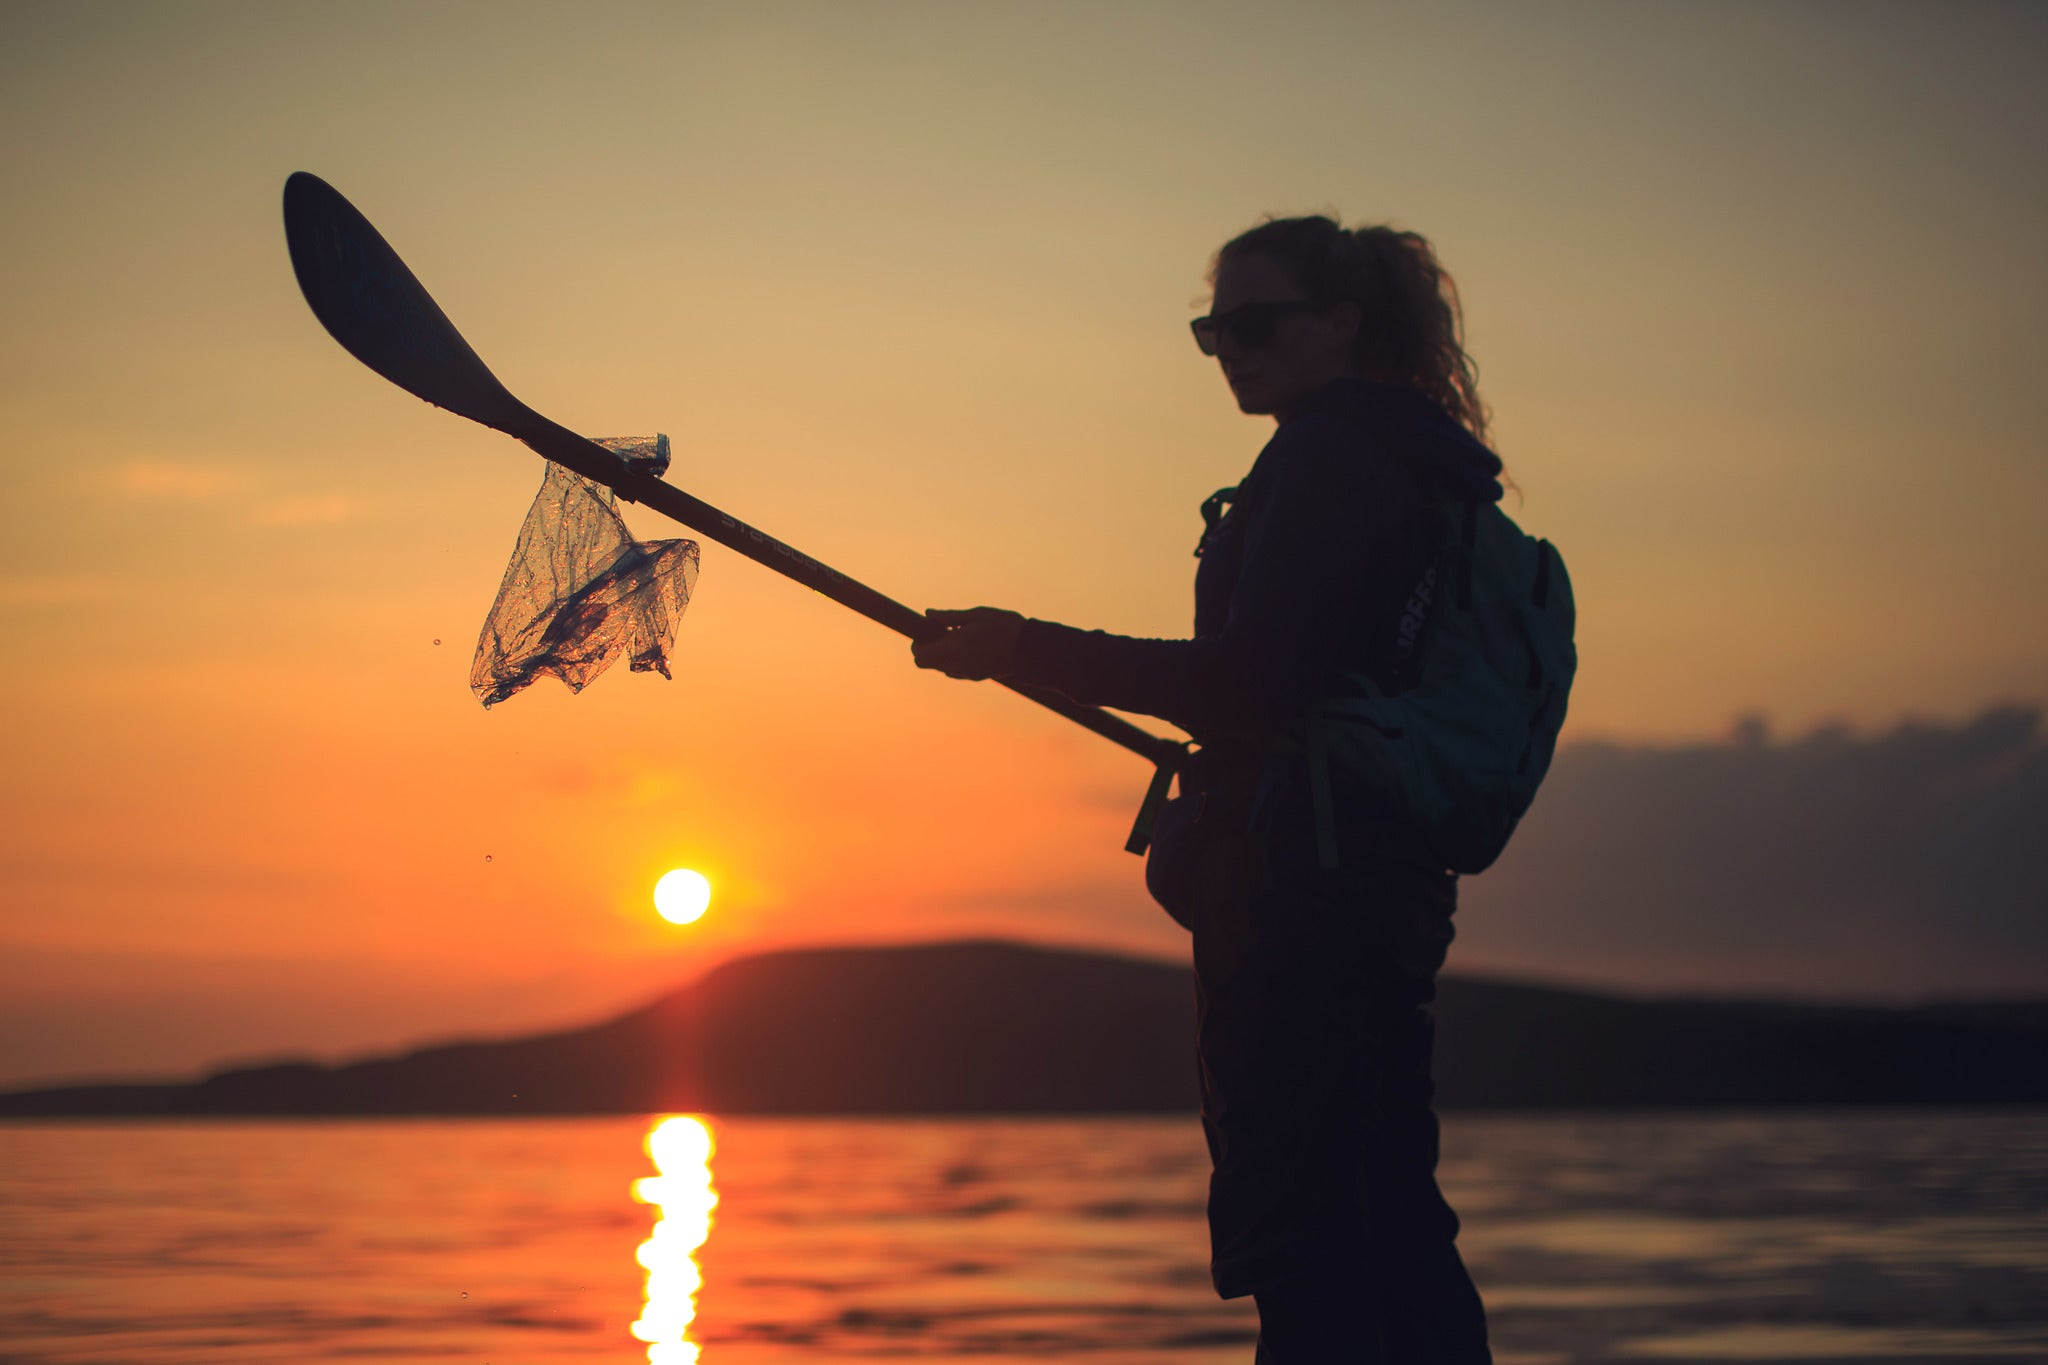 Cal Major collecting rubbish from the sea with her paddle